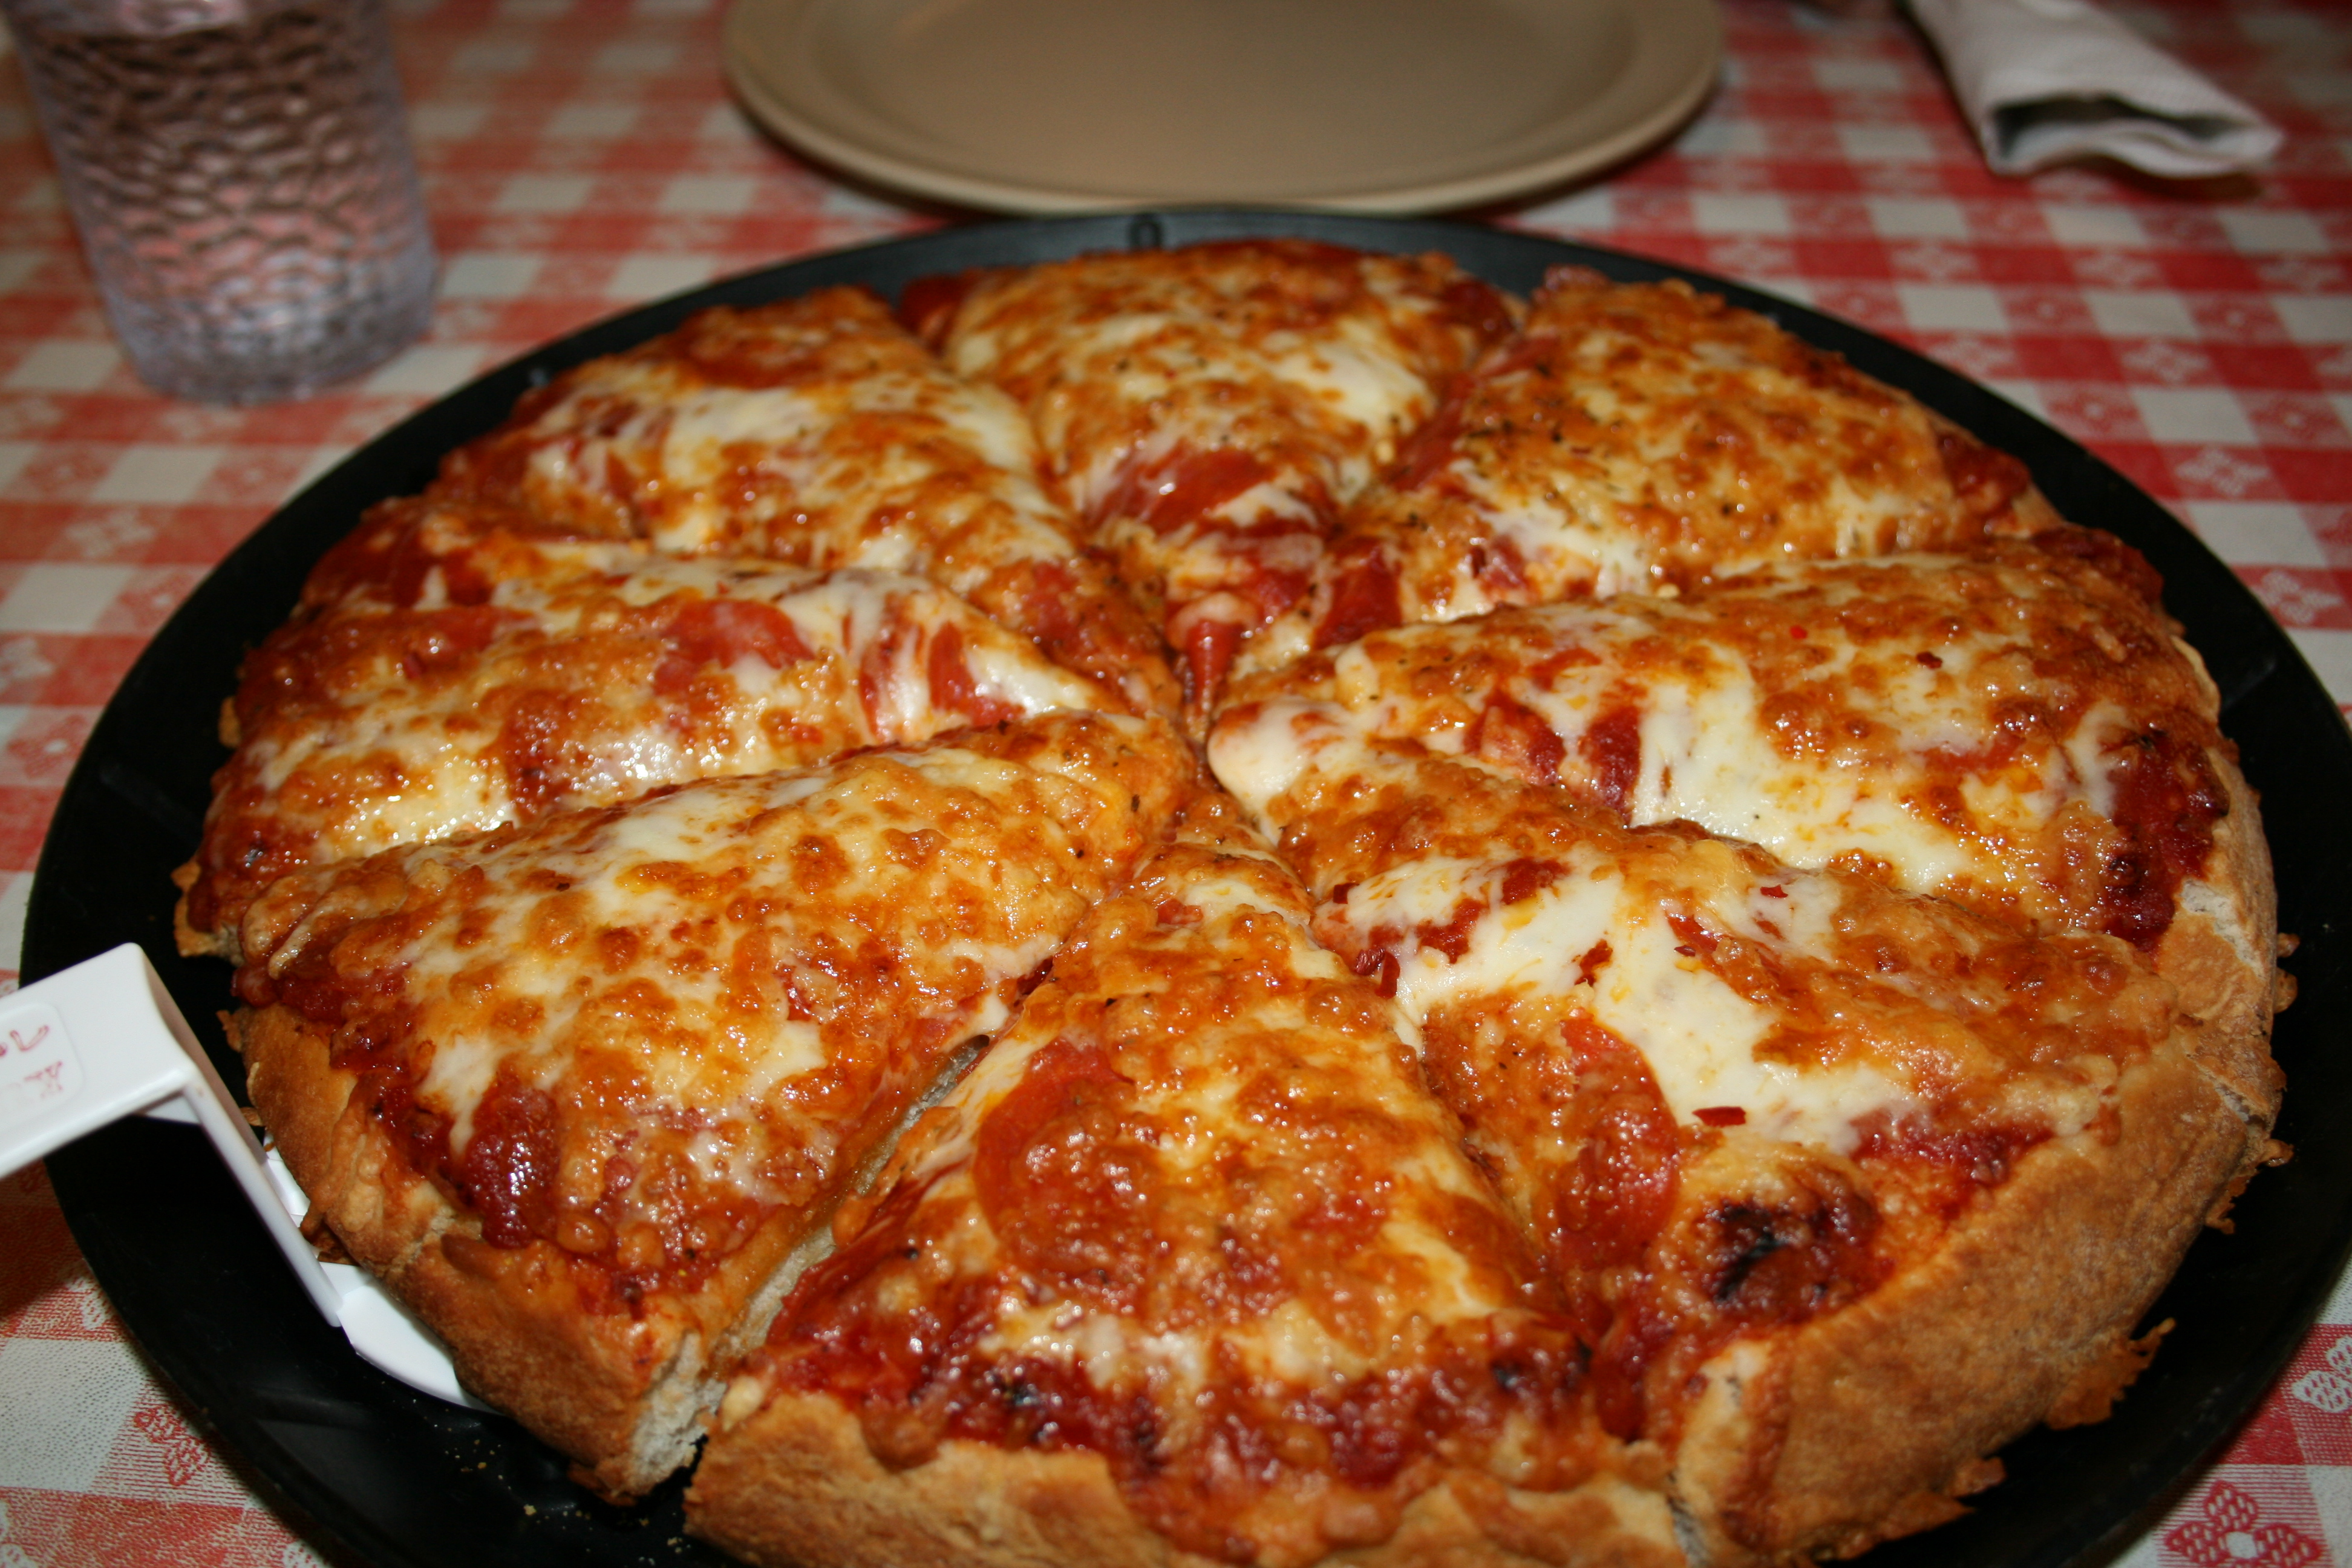 Pizza is a savory dish of Italian origin, consisting of a usually round, flattened base of leavened wheat-based dough topped with tomatoes, cheese, and various other ingredients (anchovies, olives, meat, etc.) baked at a high temperature, traditionally in a wood-fired oven. In formal settings, like a restaurant, pizza is eaten with knife and.